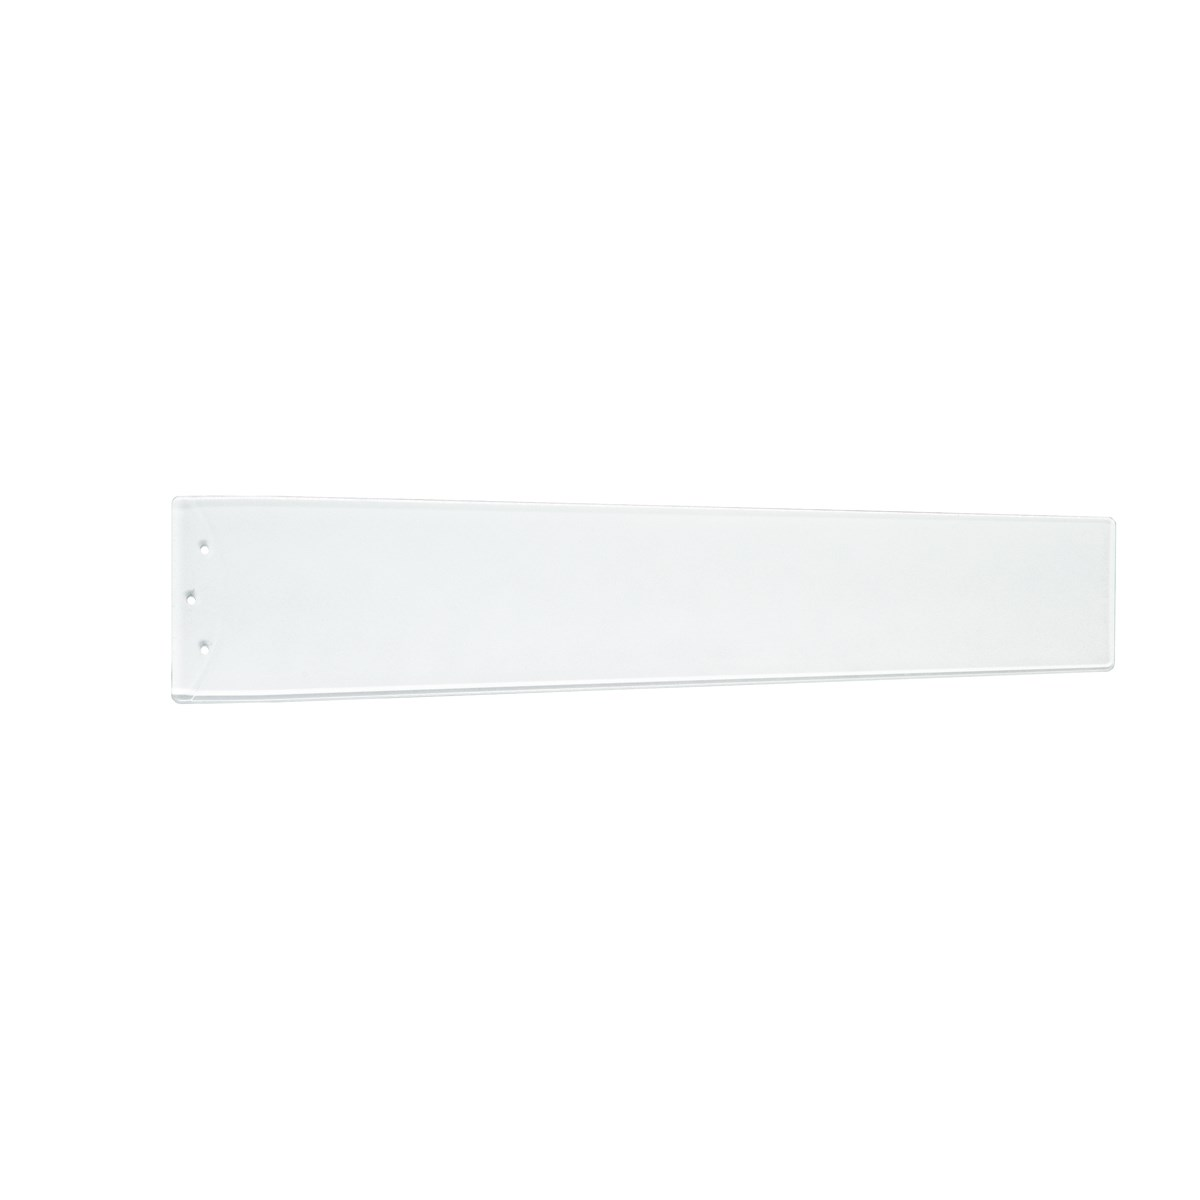 "Arkwright™ 48"" Polycarbonate Blade Clear White and Silver Speck"